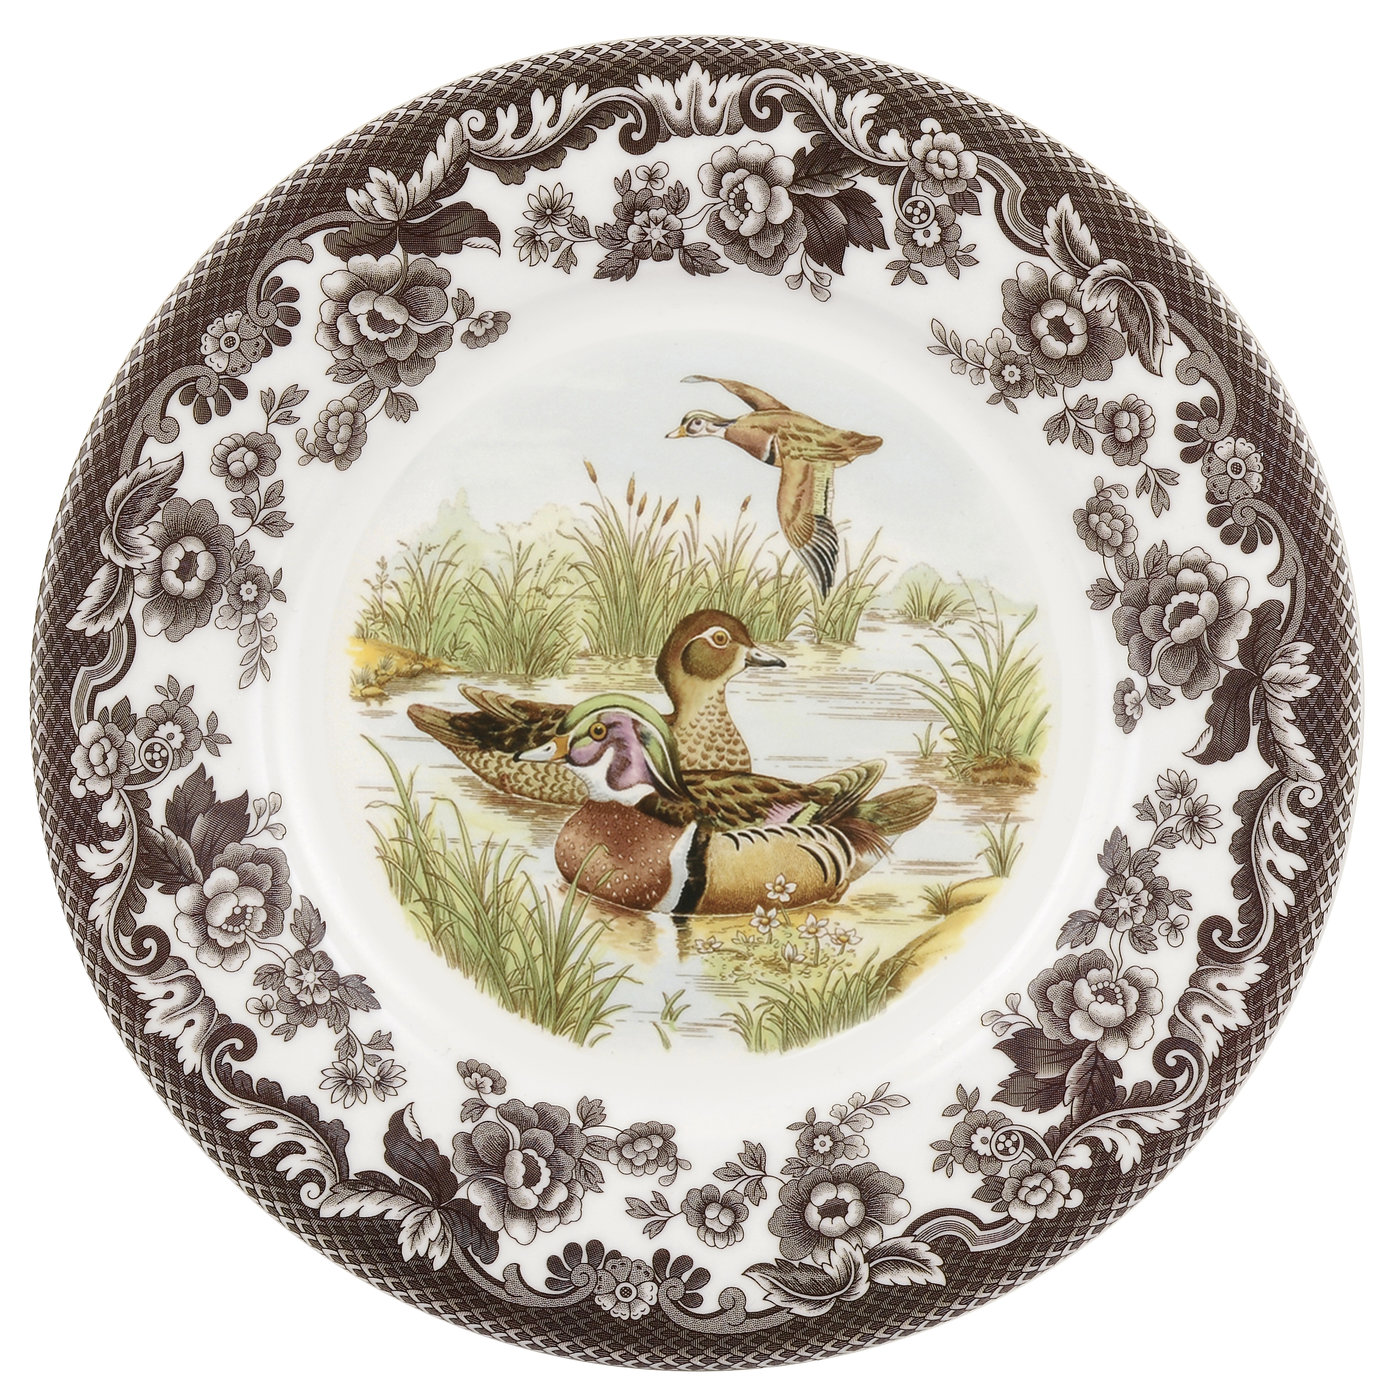 Spode Woodland  Luncheon Plate 9 Inch (Wood Duck) image number 0